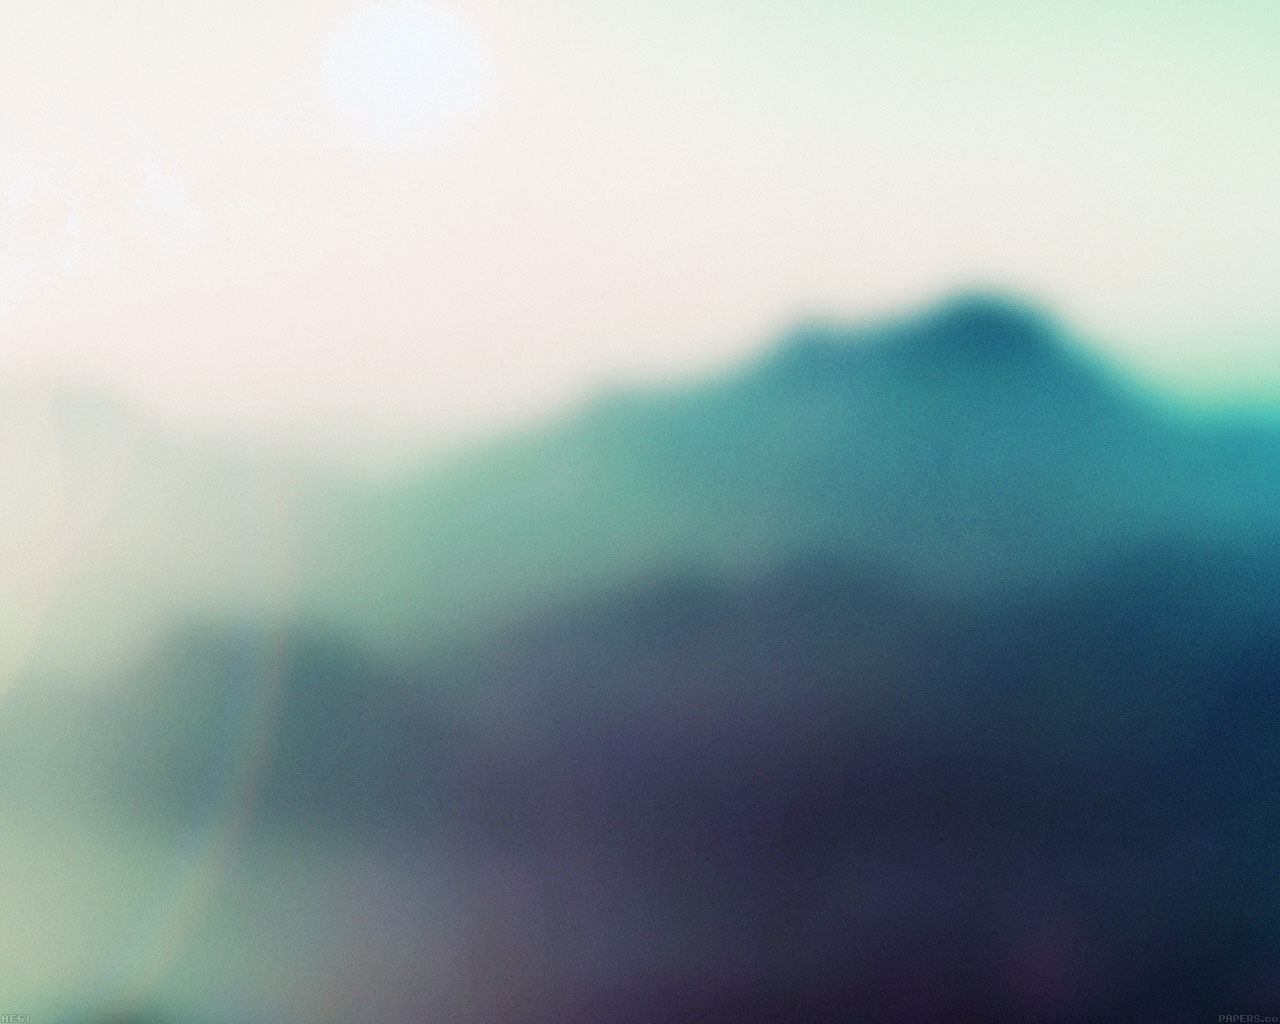 Fall Morning Wallpapers For Samsung 4 Ae61 Mountain Sun Lights Green Blur Bokeh Shiny Papers Co